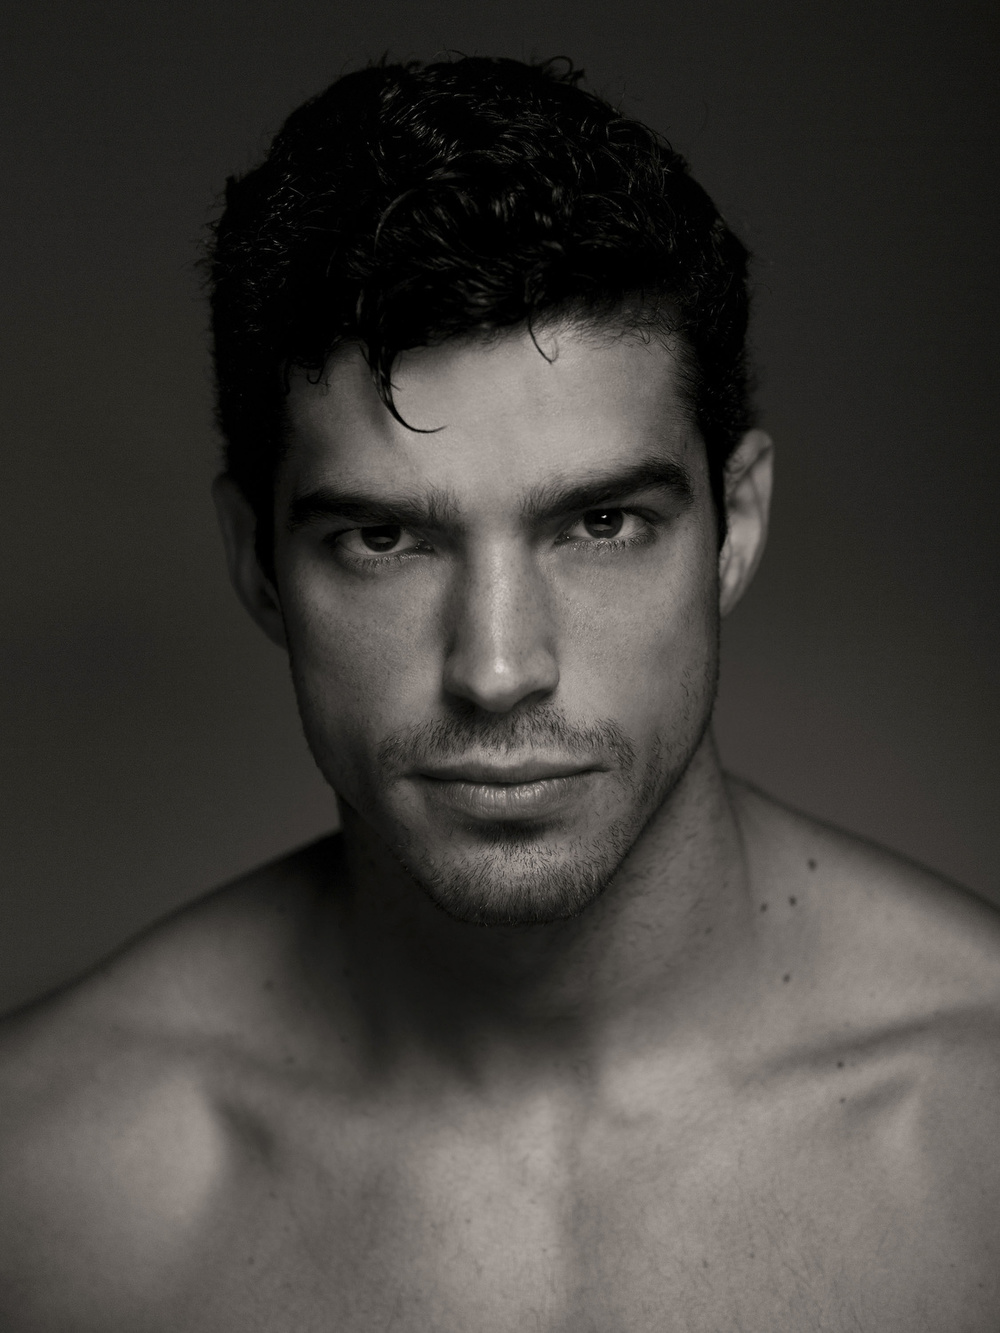 studio_photohography_book__actor_portrait_blackandwhite_gonzalo_arroyo04.JPG